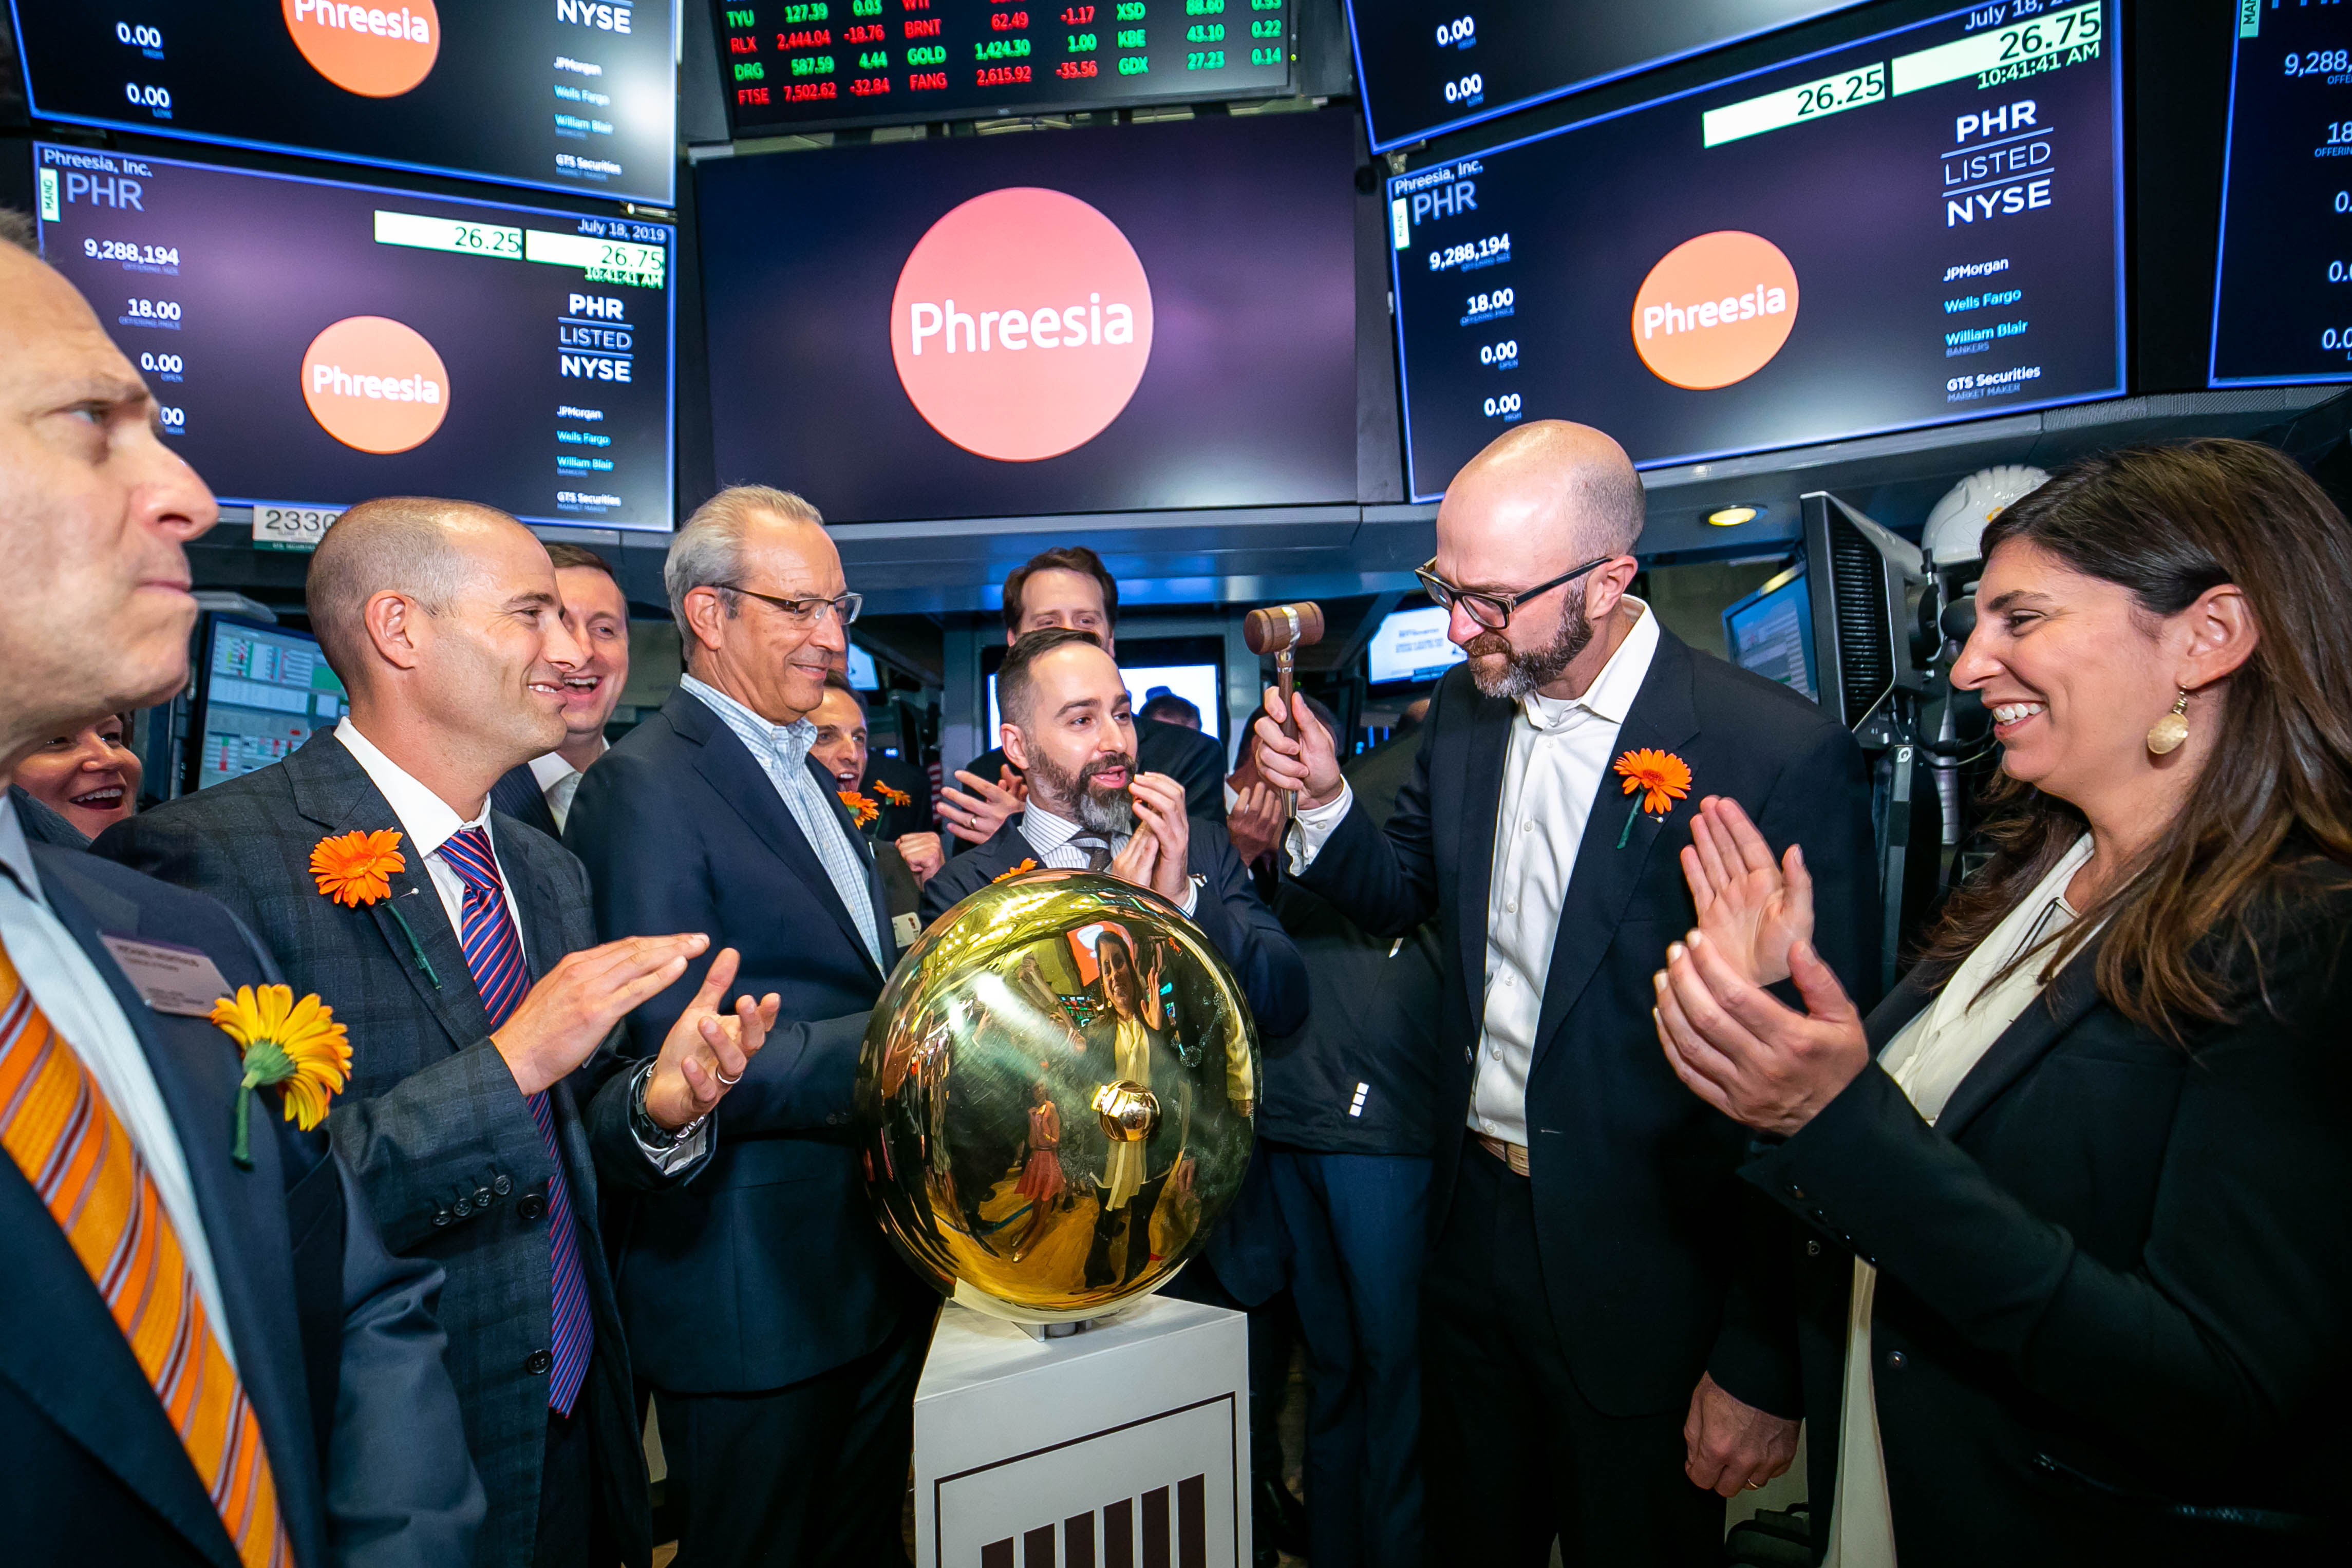 Phreesia has strong public debut as 2nd digital health IPO